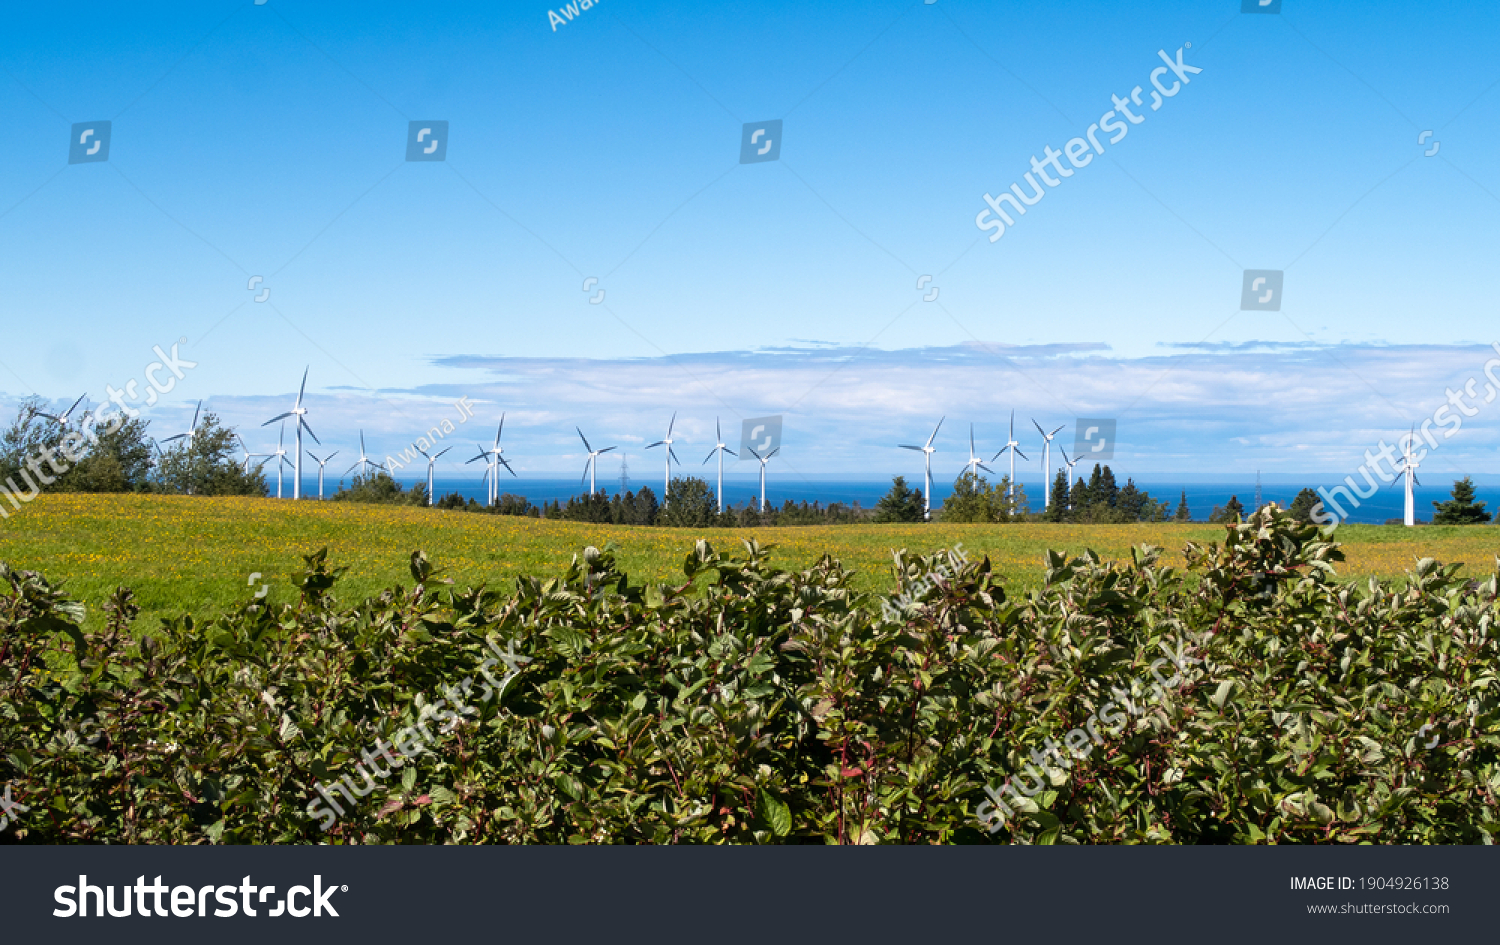 stock-photo-cap-chat-canada-september-vi